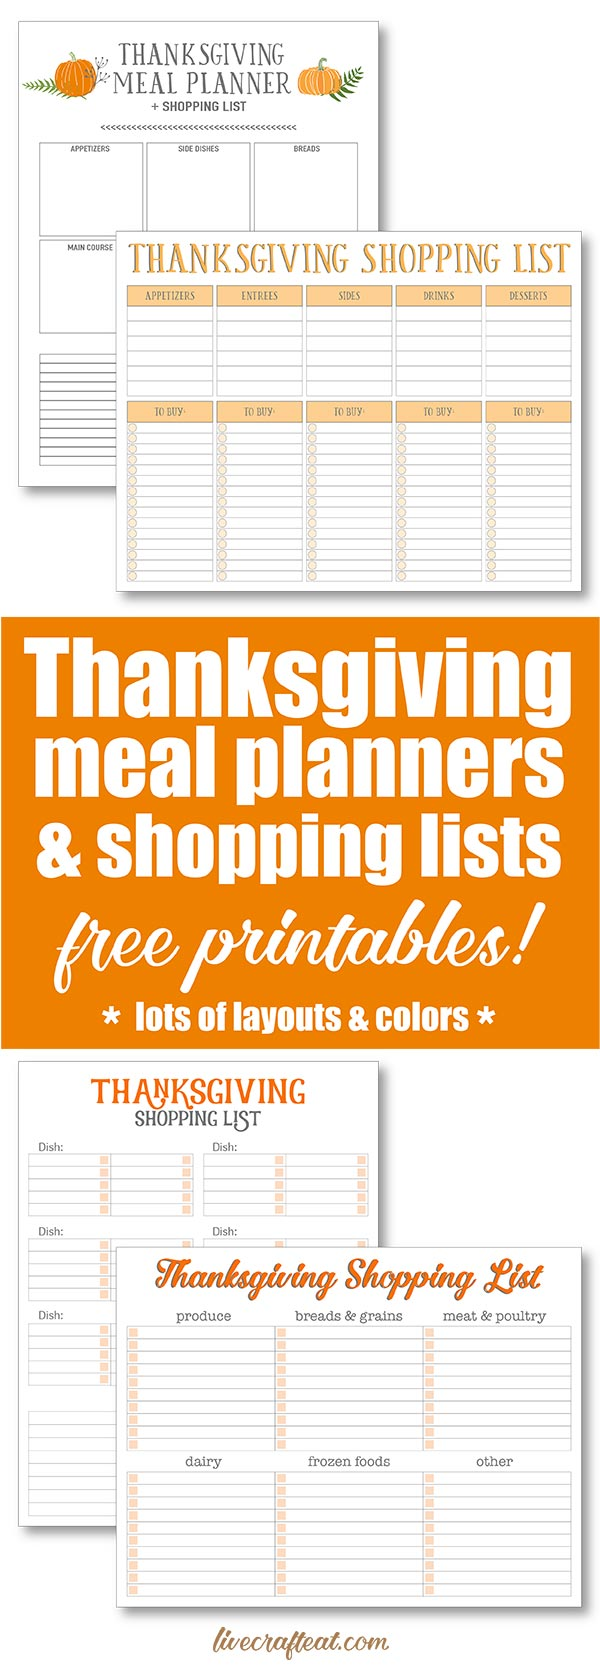 free printable thanksgiving meal planners & shopping lists! lots of layouts and colors!